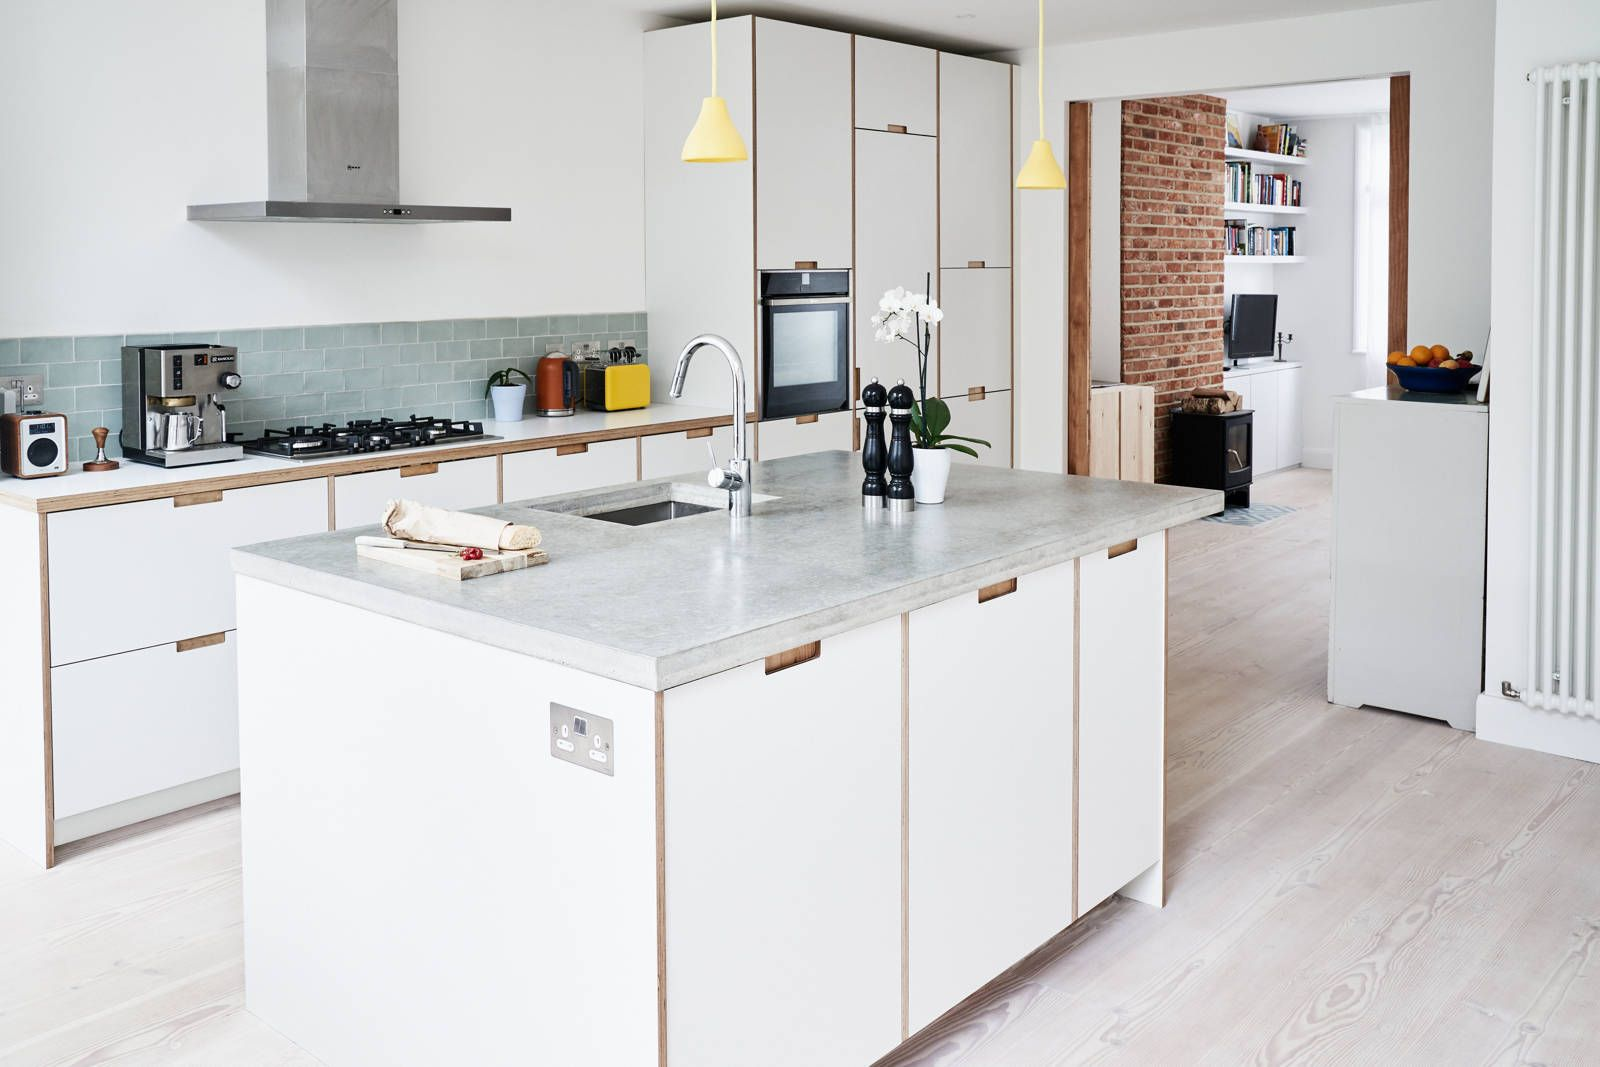 Formica Faced Plywood Kitchen In Crystal White By Plykea Plywood Kitchen Kitchen Kitchen Worktop